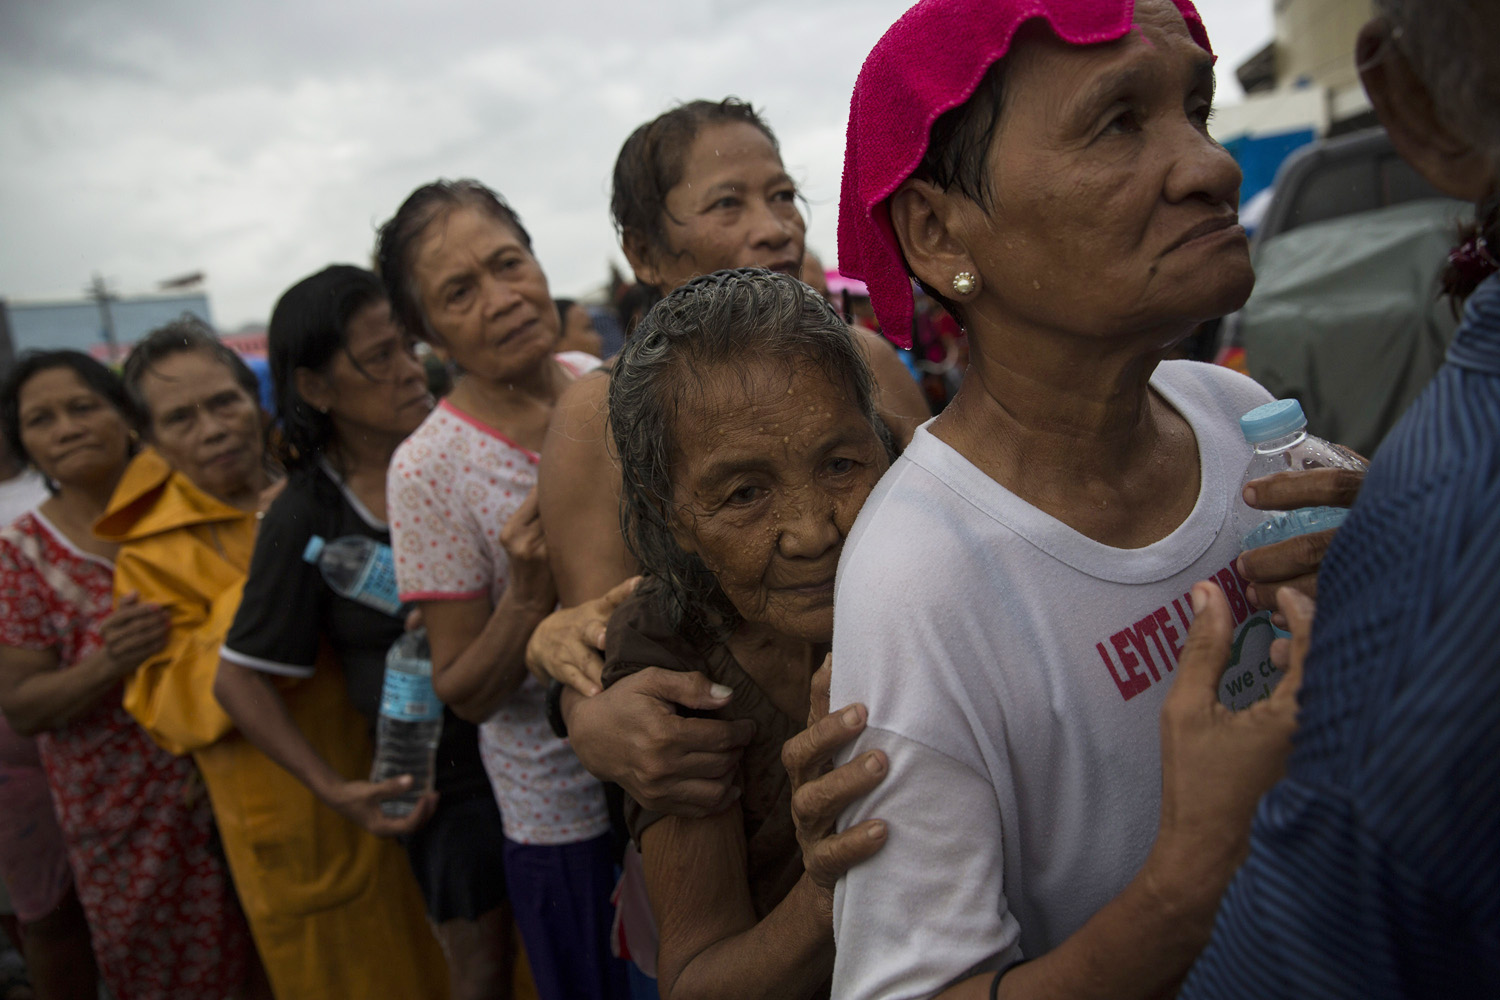 At a displacement camp in Tacloban, refugees wait for aid to be distributed, Nov. 14, 2013.